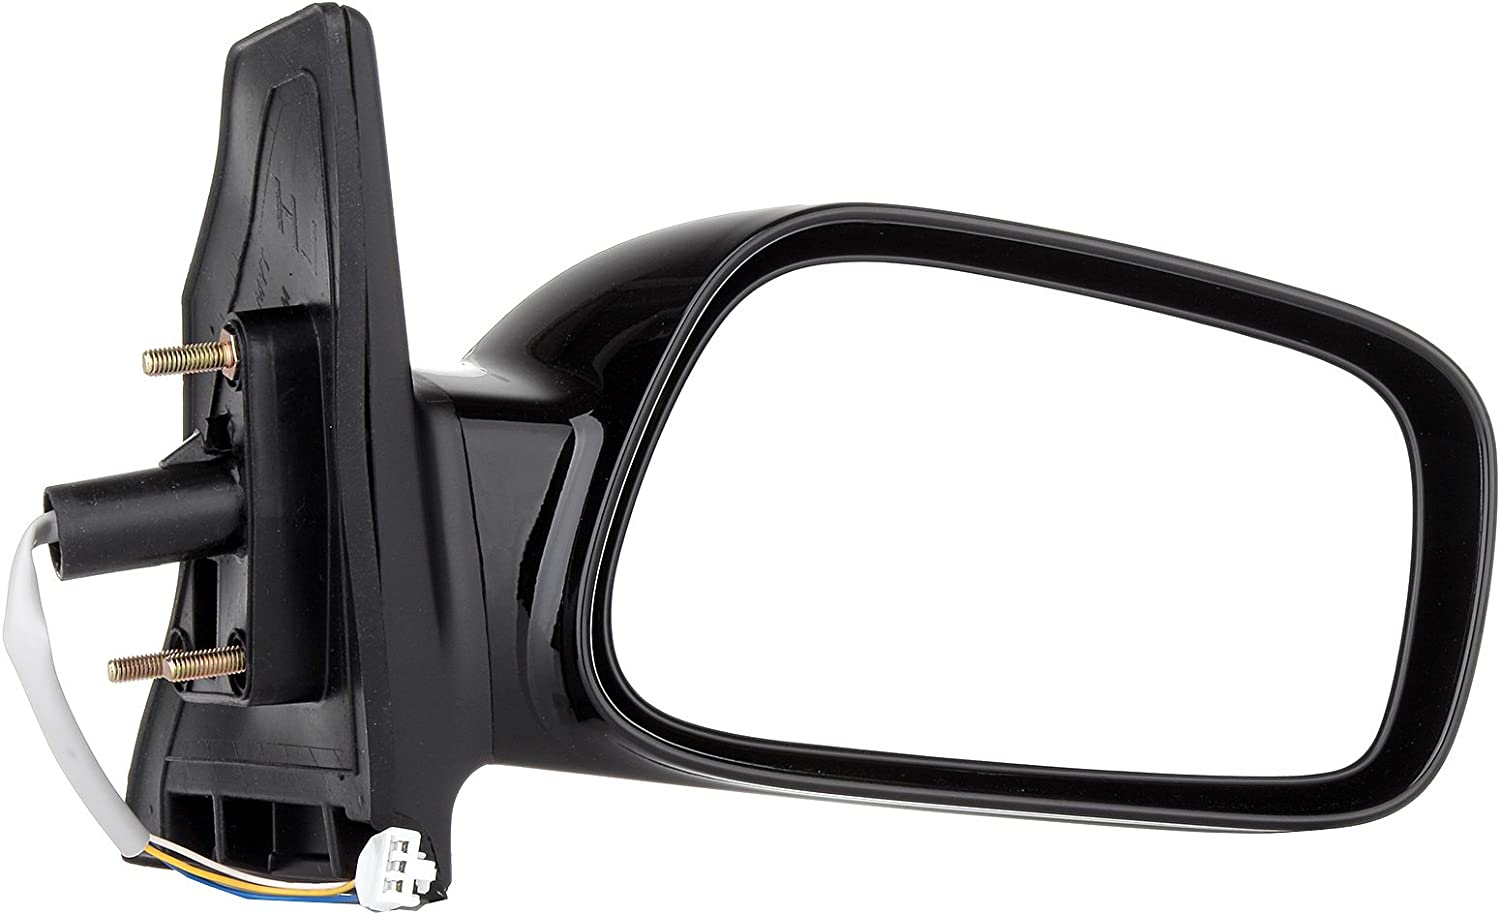 Mirror for 03-08 Toyota Corolla TO1320178 8794002380 ECCPP Power Side View Mirror Gloss Black Driver Side LH